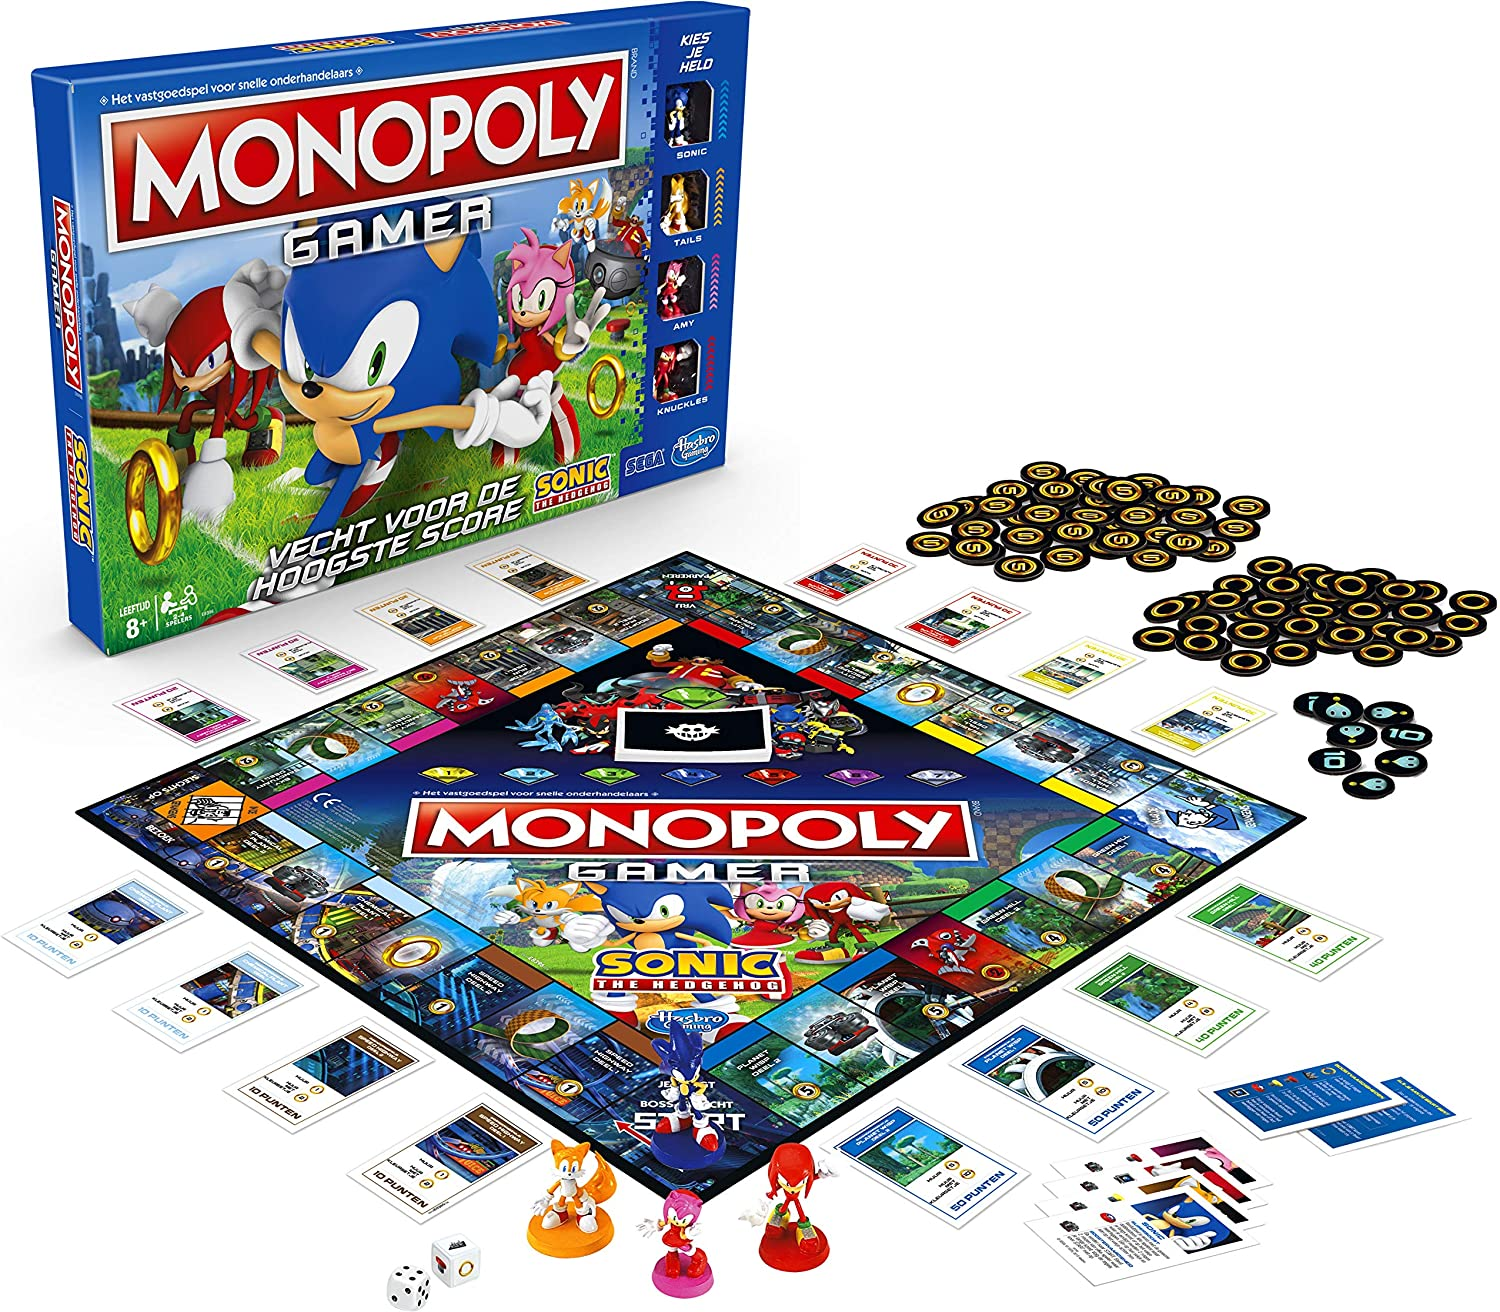 7. Monopoly Gamer - Sonic The Hedgehog Edition